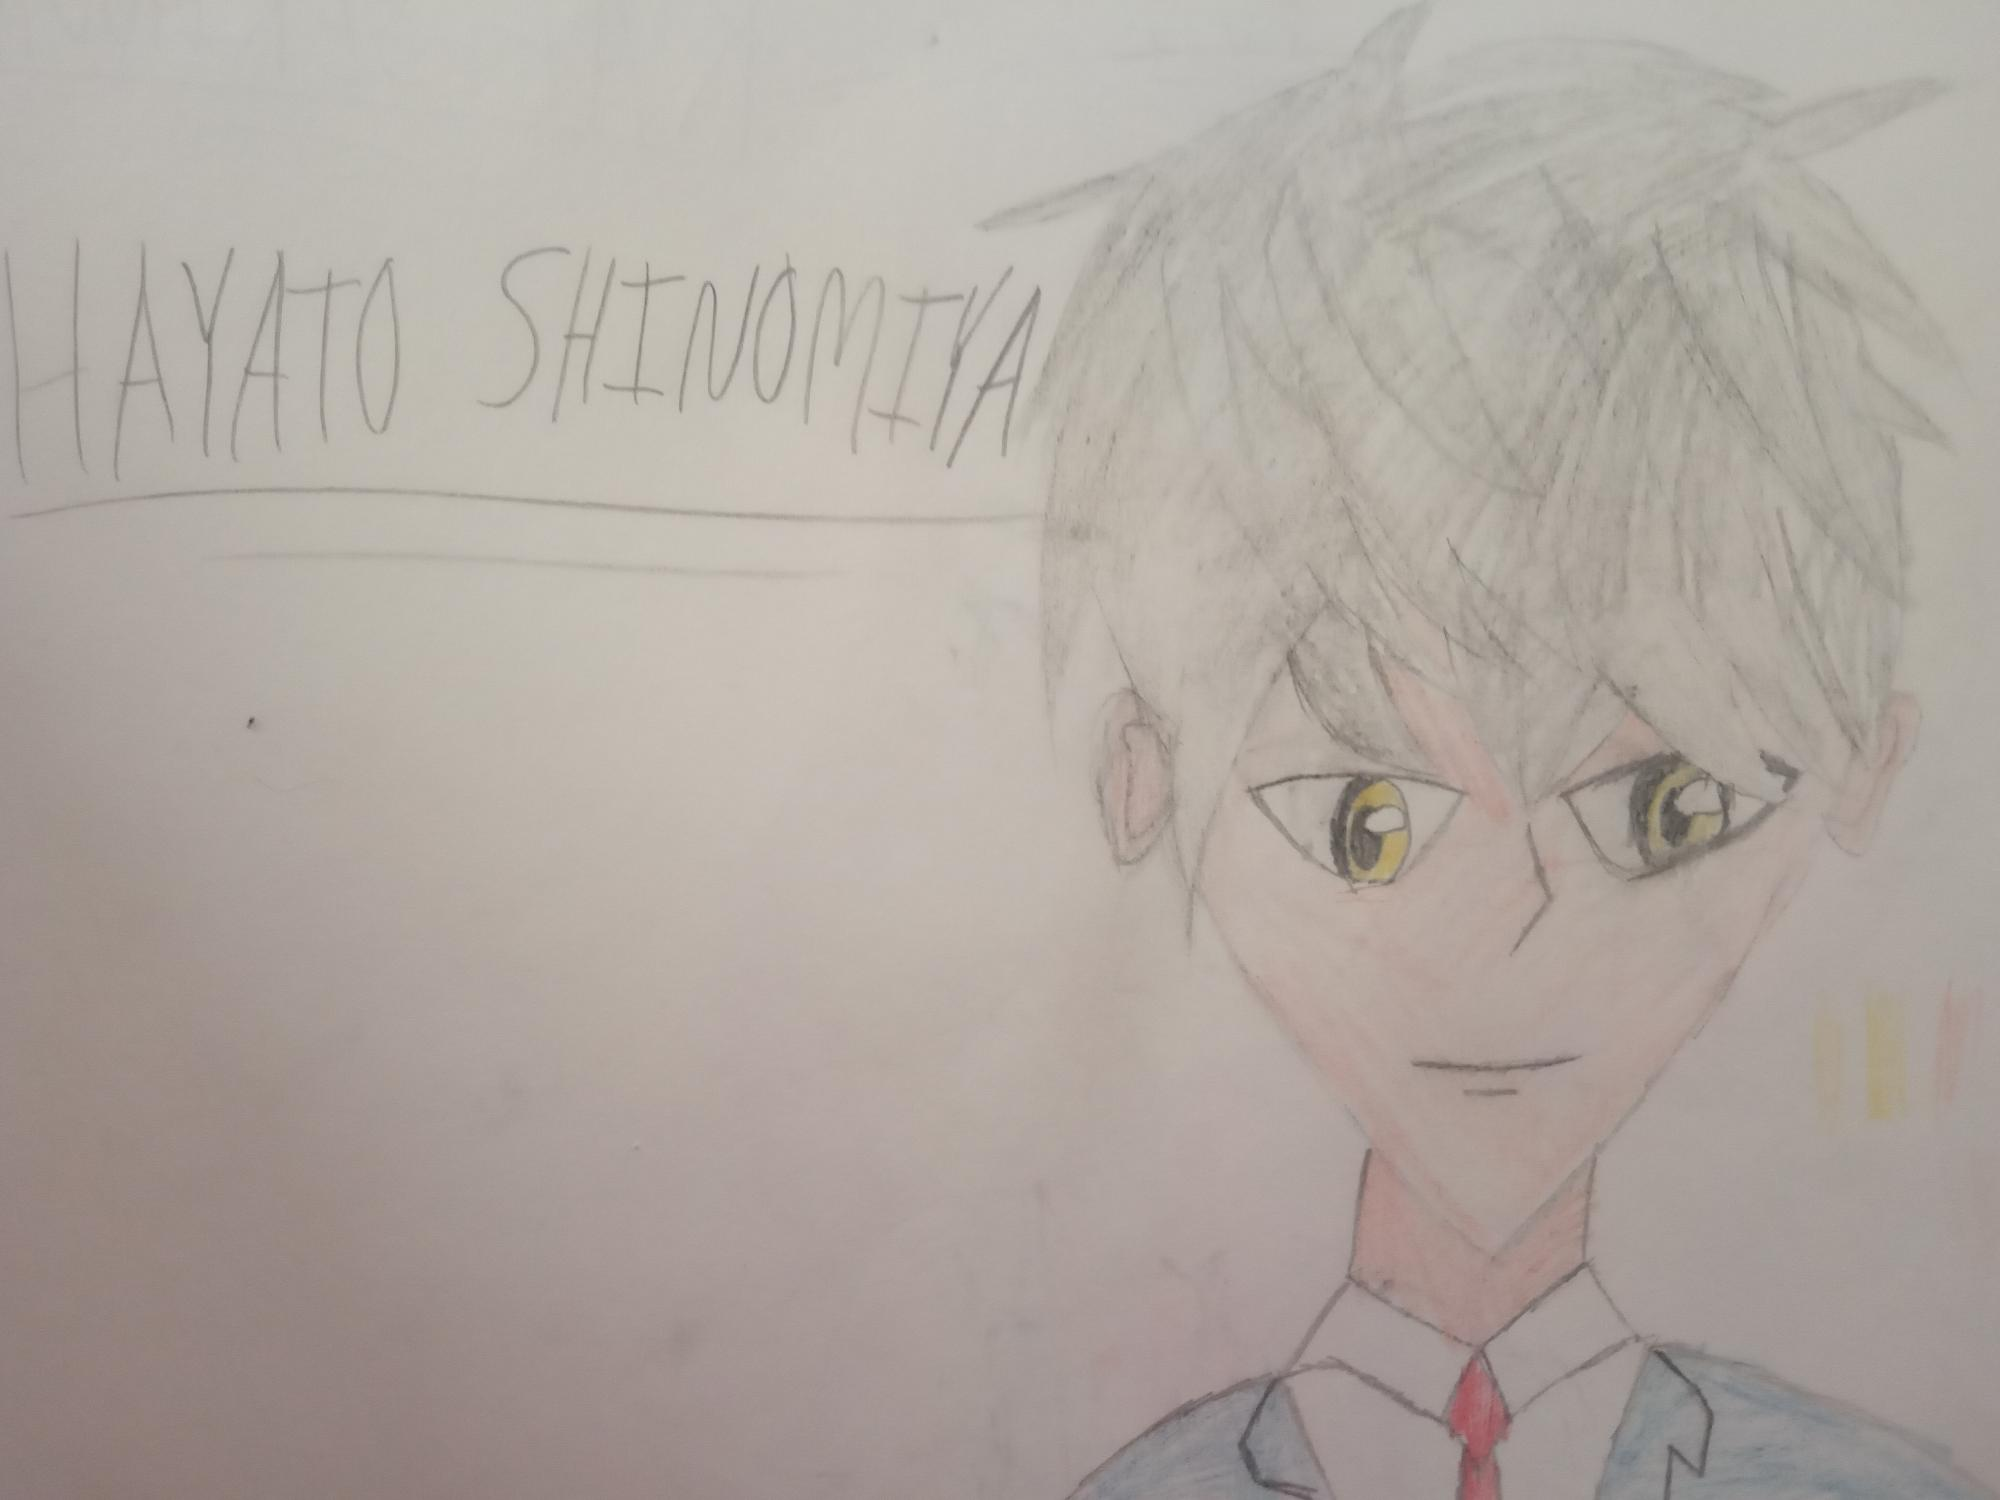 Hayato Shinomiya from 'kiss him not me' - Only a quick sketch from memory.